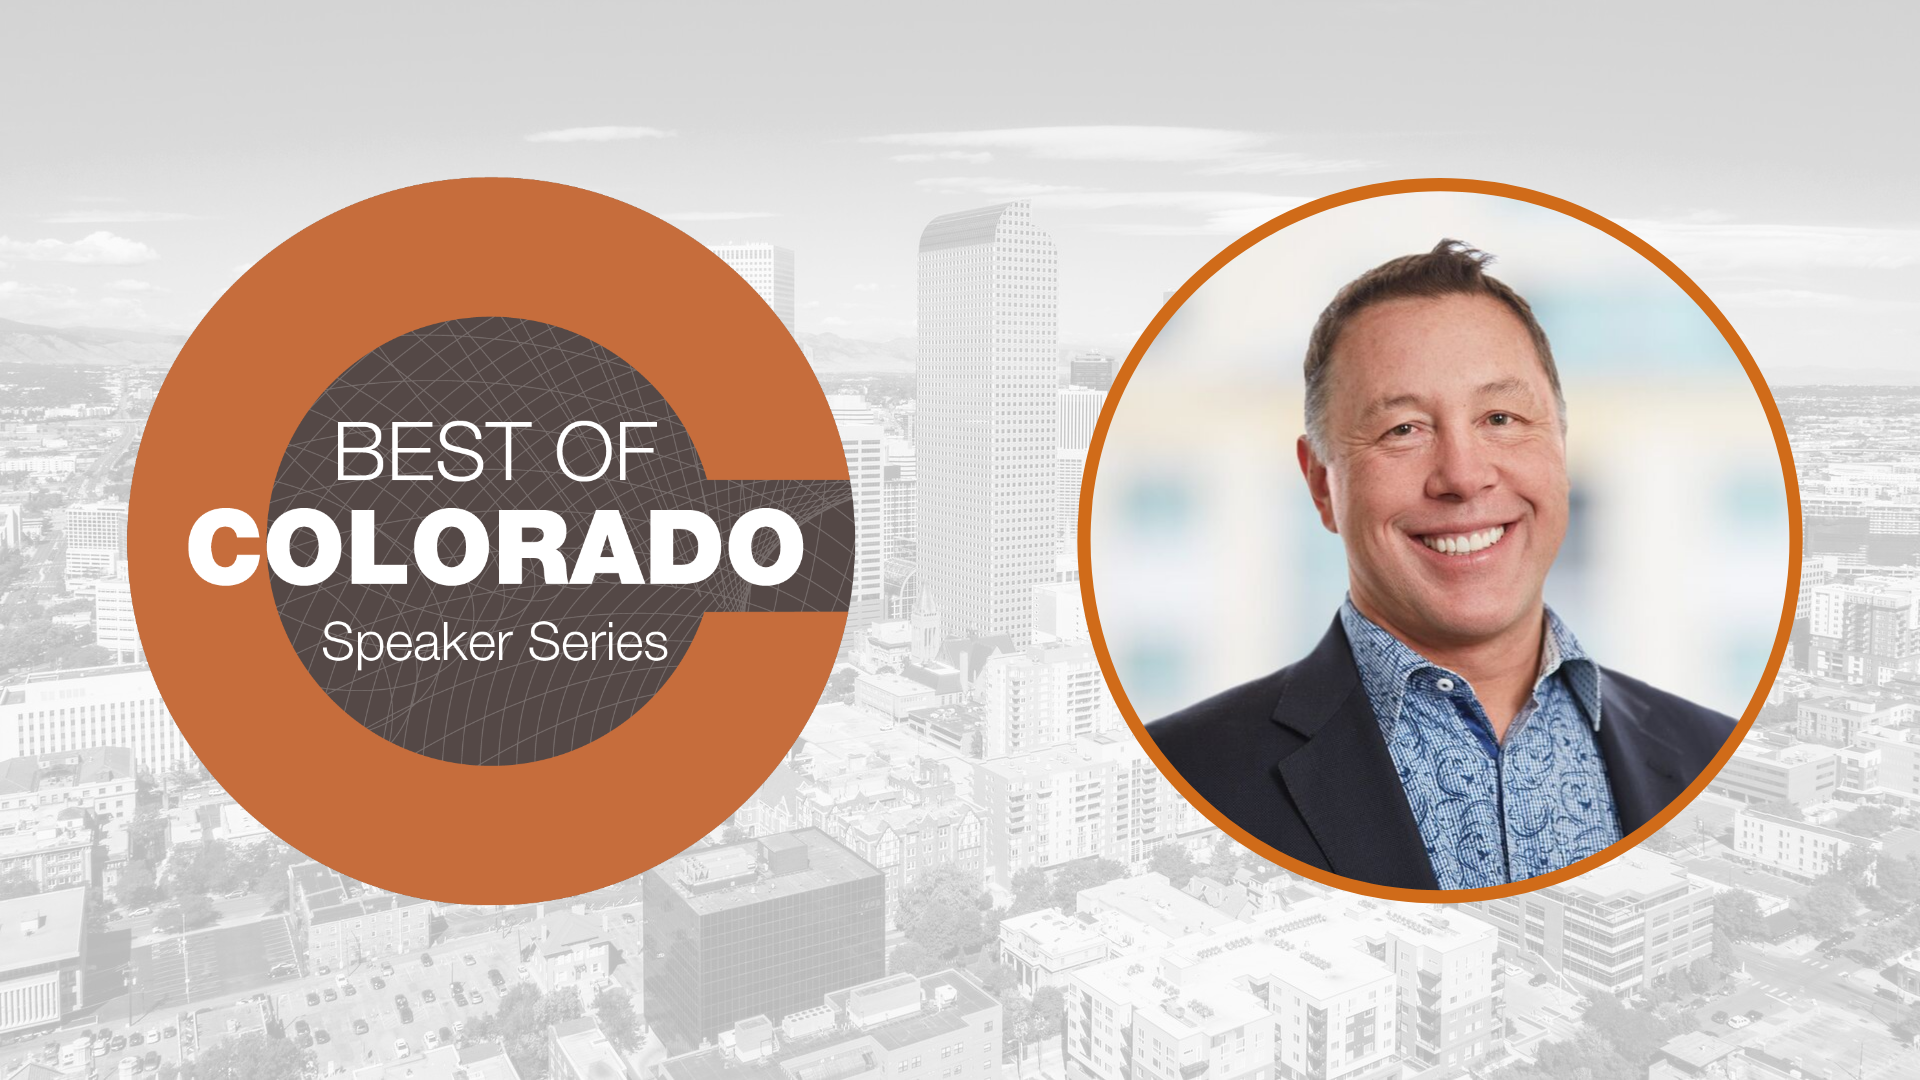 Best of Colorado: Andre Durand